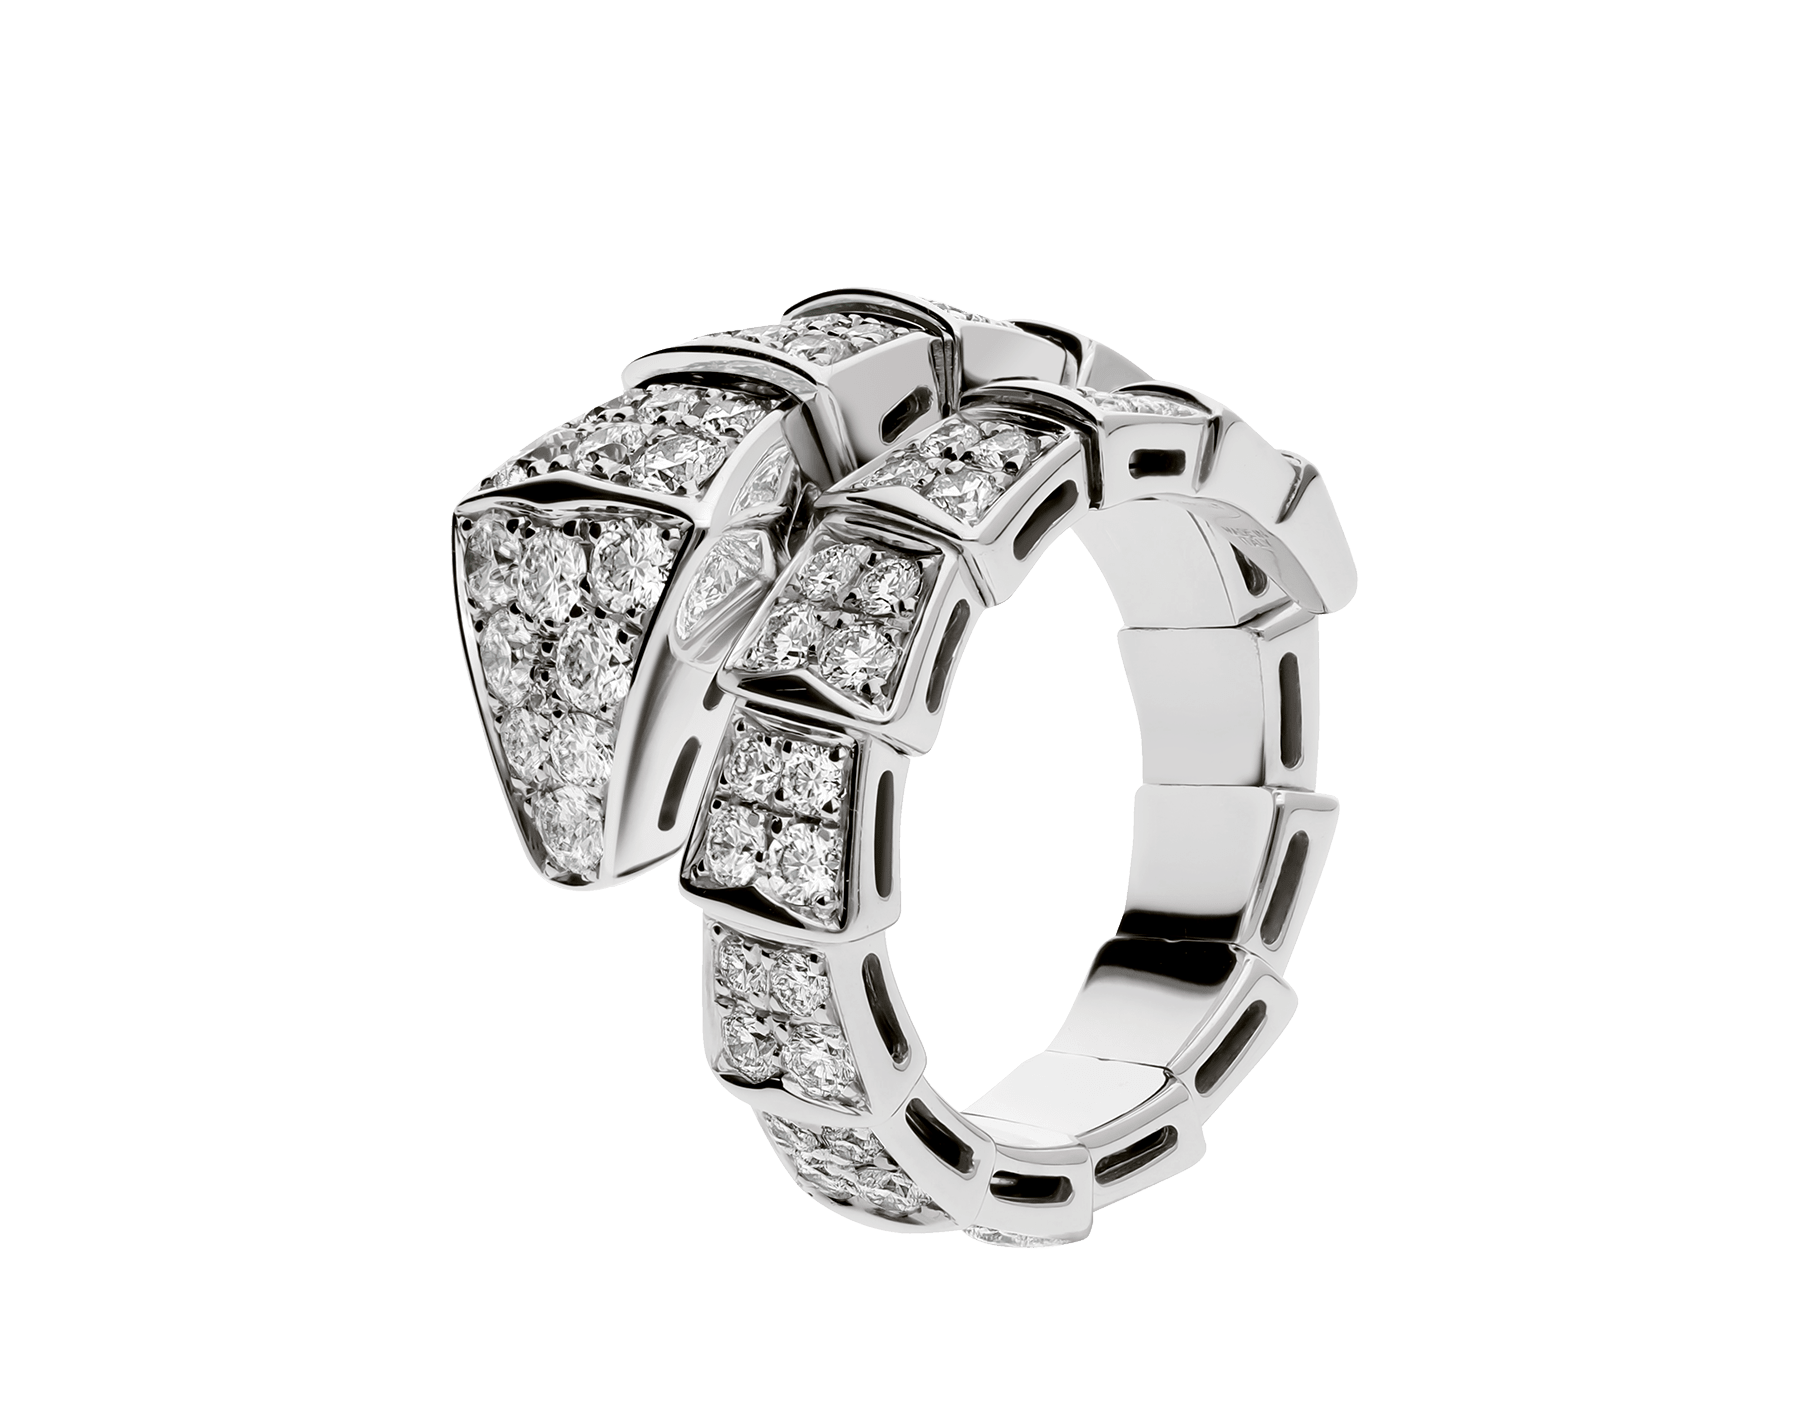 Serpenti one-coil ring in 18 kt white gold, set with full pavé diamonds. AN855116 image 1